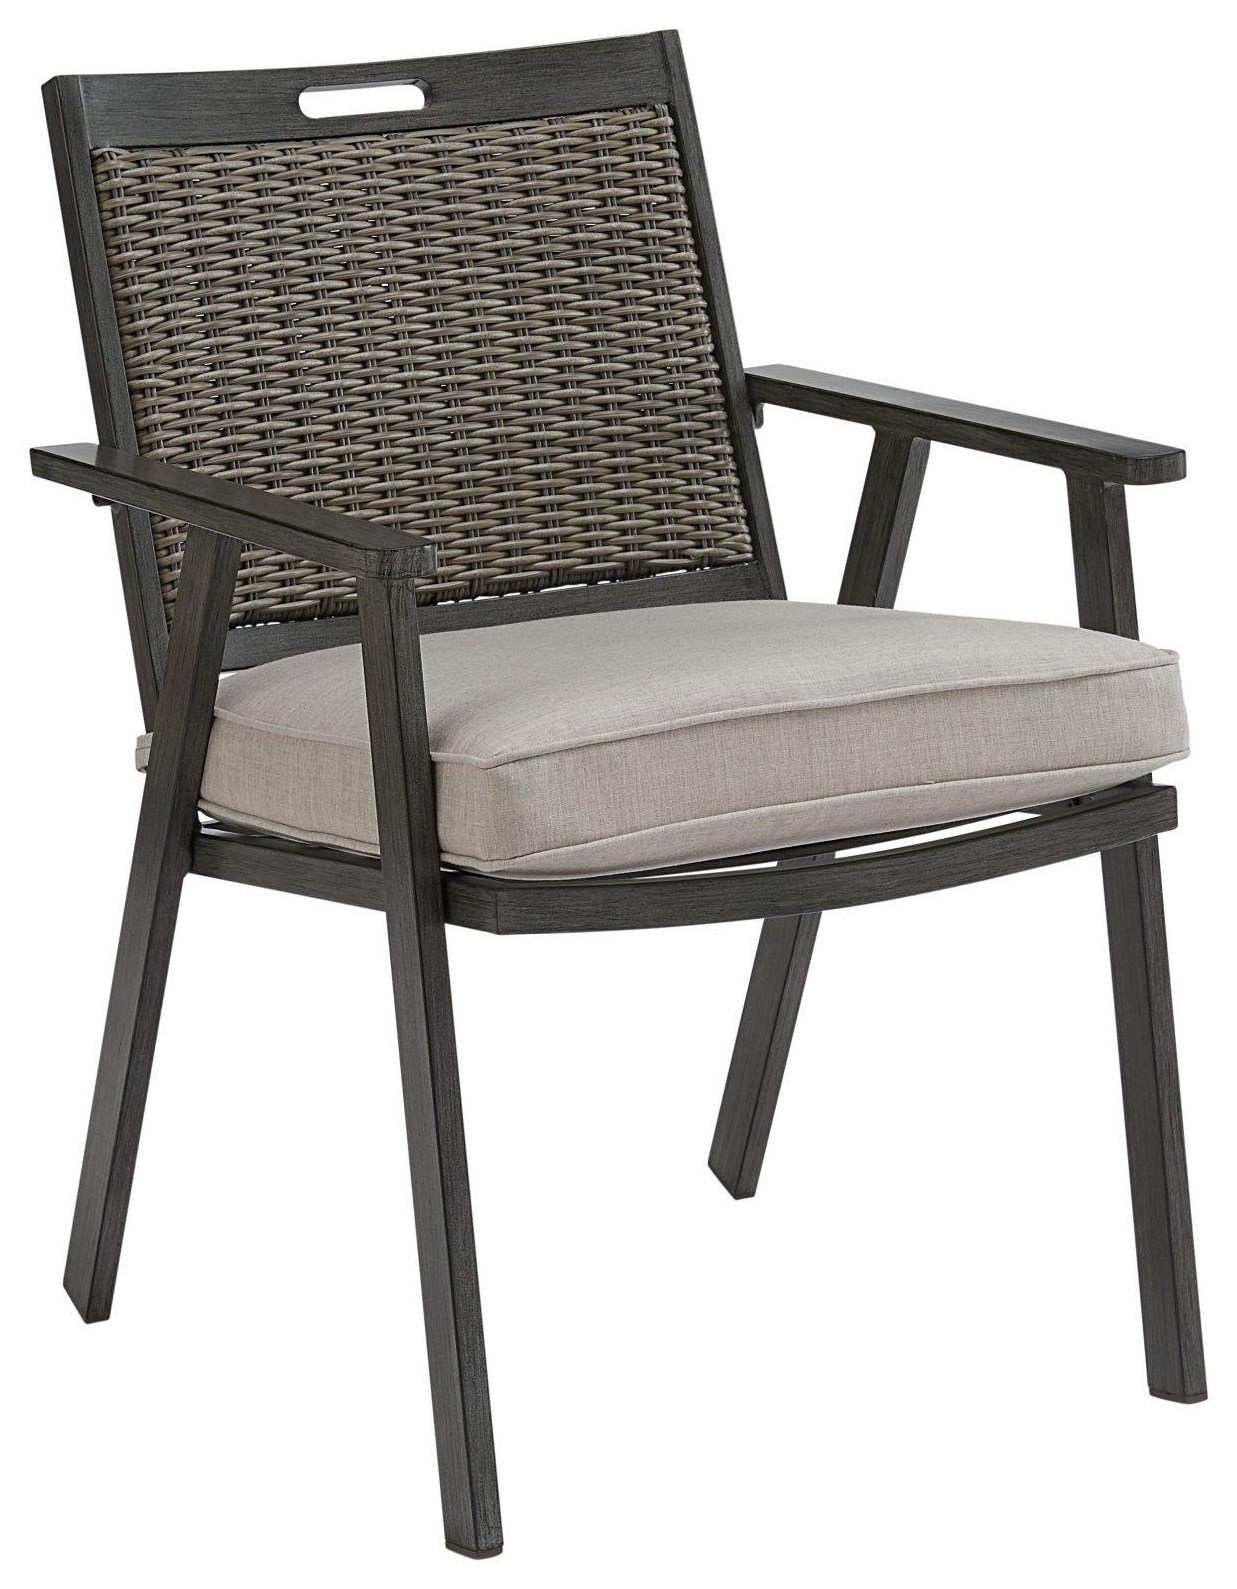 Adison Dining Chair by Apricity Outdoor at Johnny Janosik